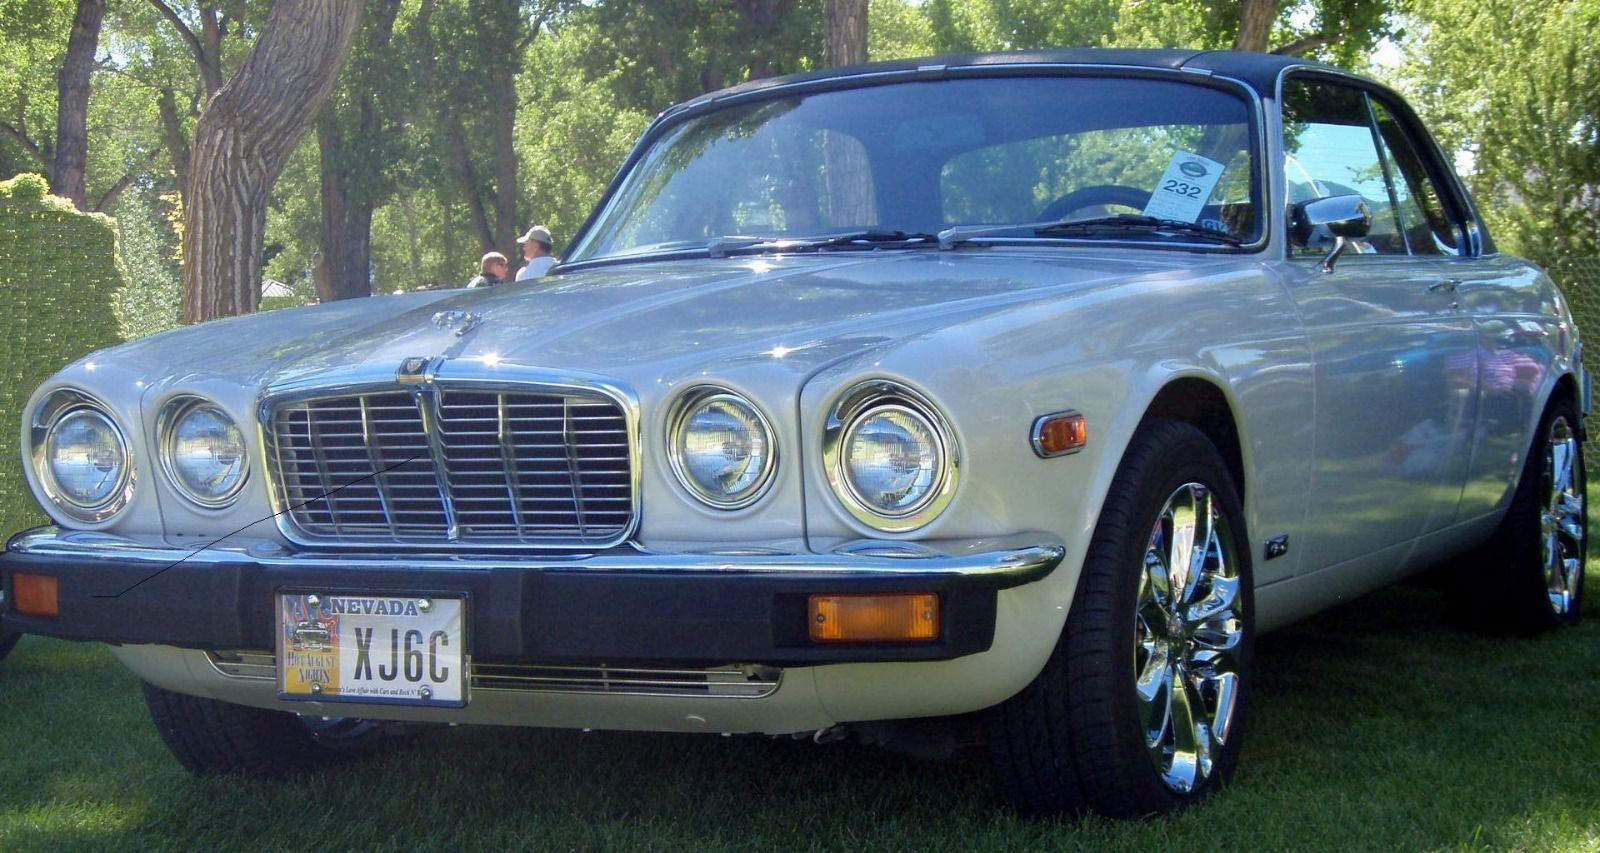 free wiring diagrams 2004 jeep grand cherokee limited diagram 1976 jaguar xj6c for sale